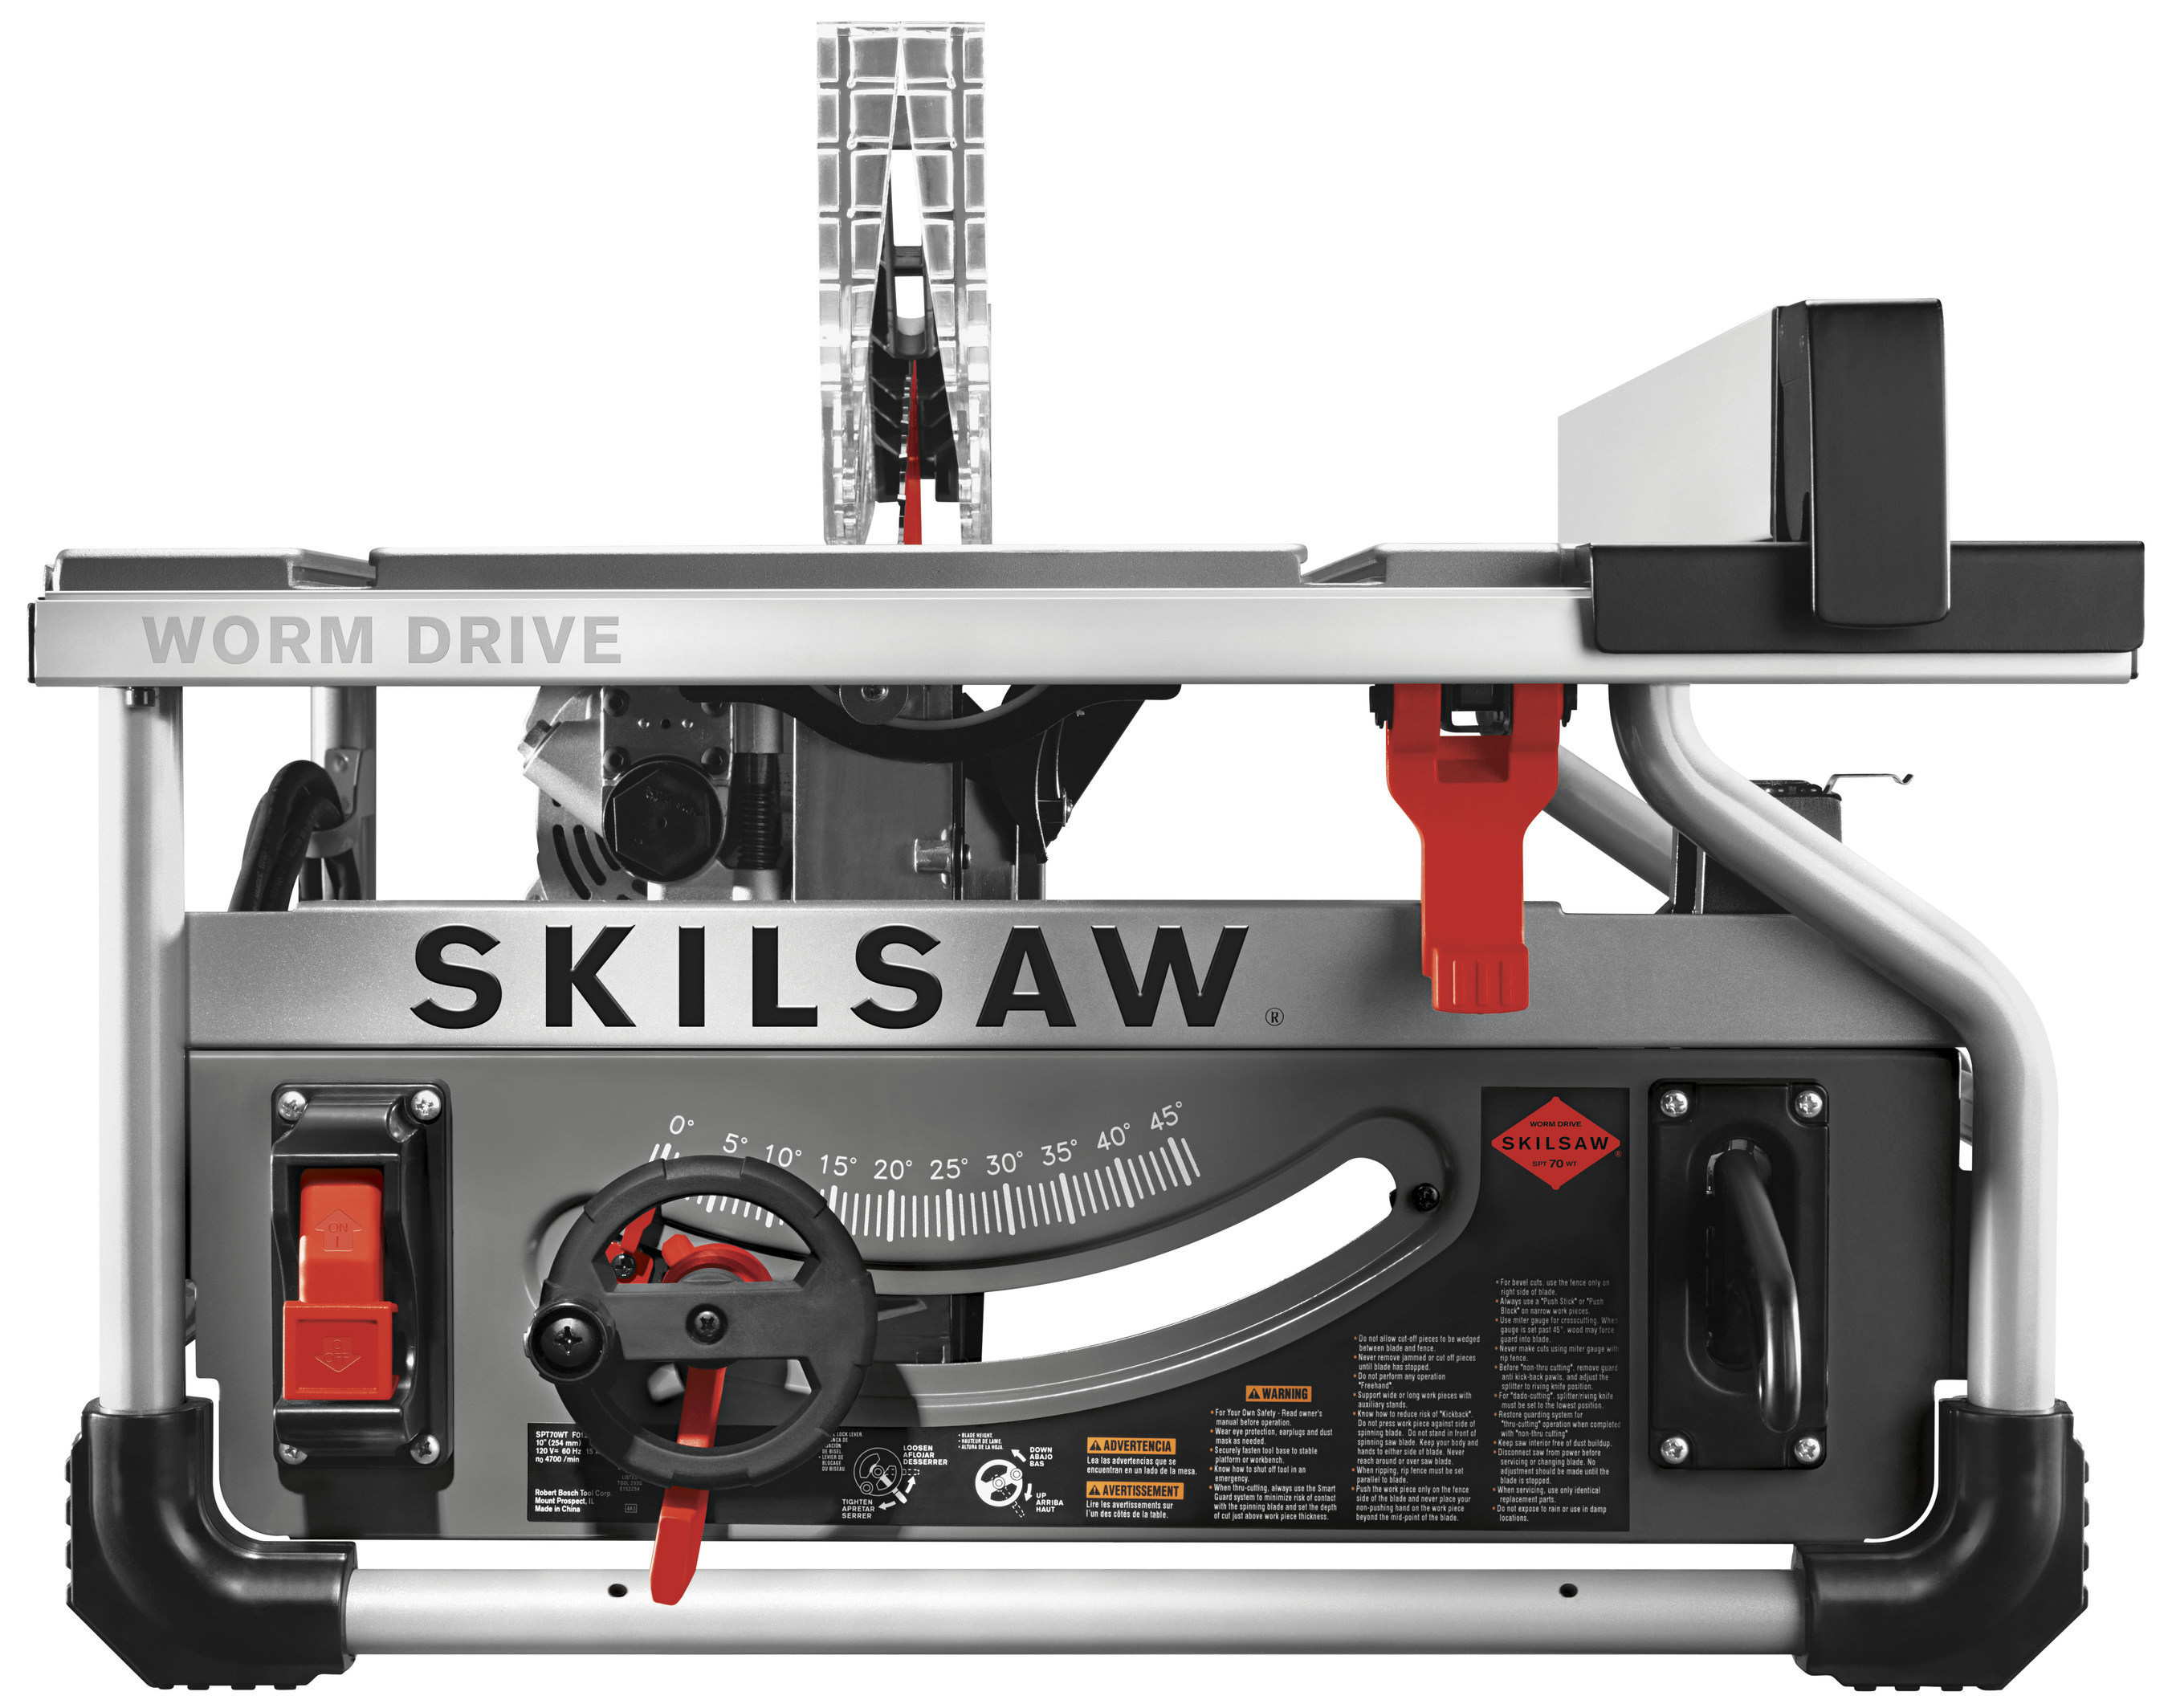 Increased power and durability are key features that pros continue to demand from every tool on the jobsite. With this in mind, SKILSAW introduces the first-ever 10 in. Worm Drive table saw. Known for its deep heritage in engineering Worm Drive handheld saws, the new SKILSAW SPT70WT-22 offers great rip cutting performance and reliability while maintaining a portable size.